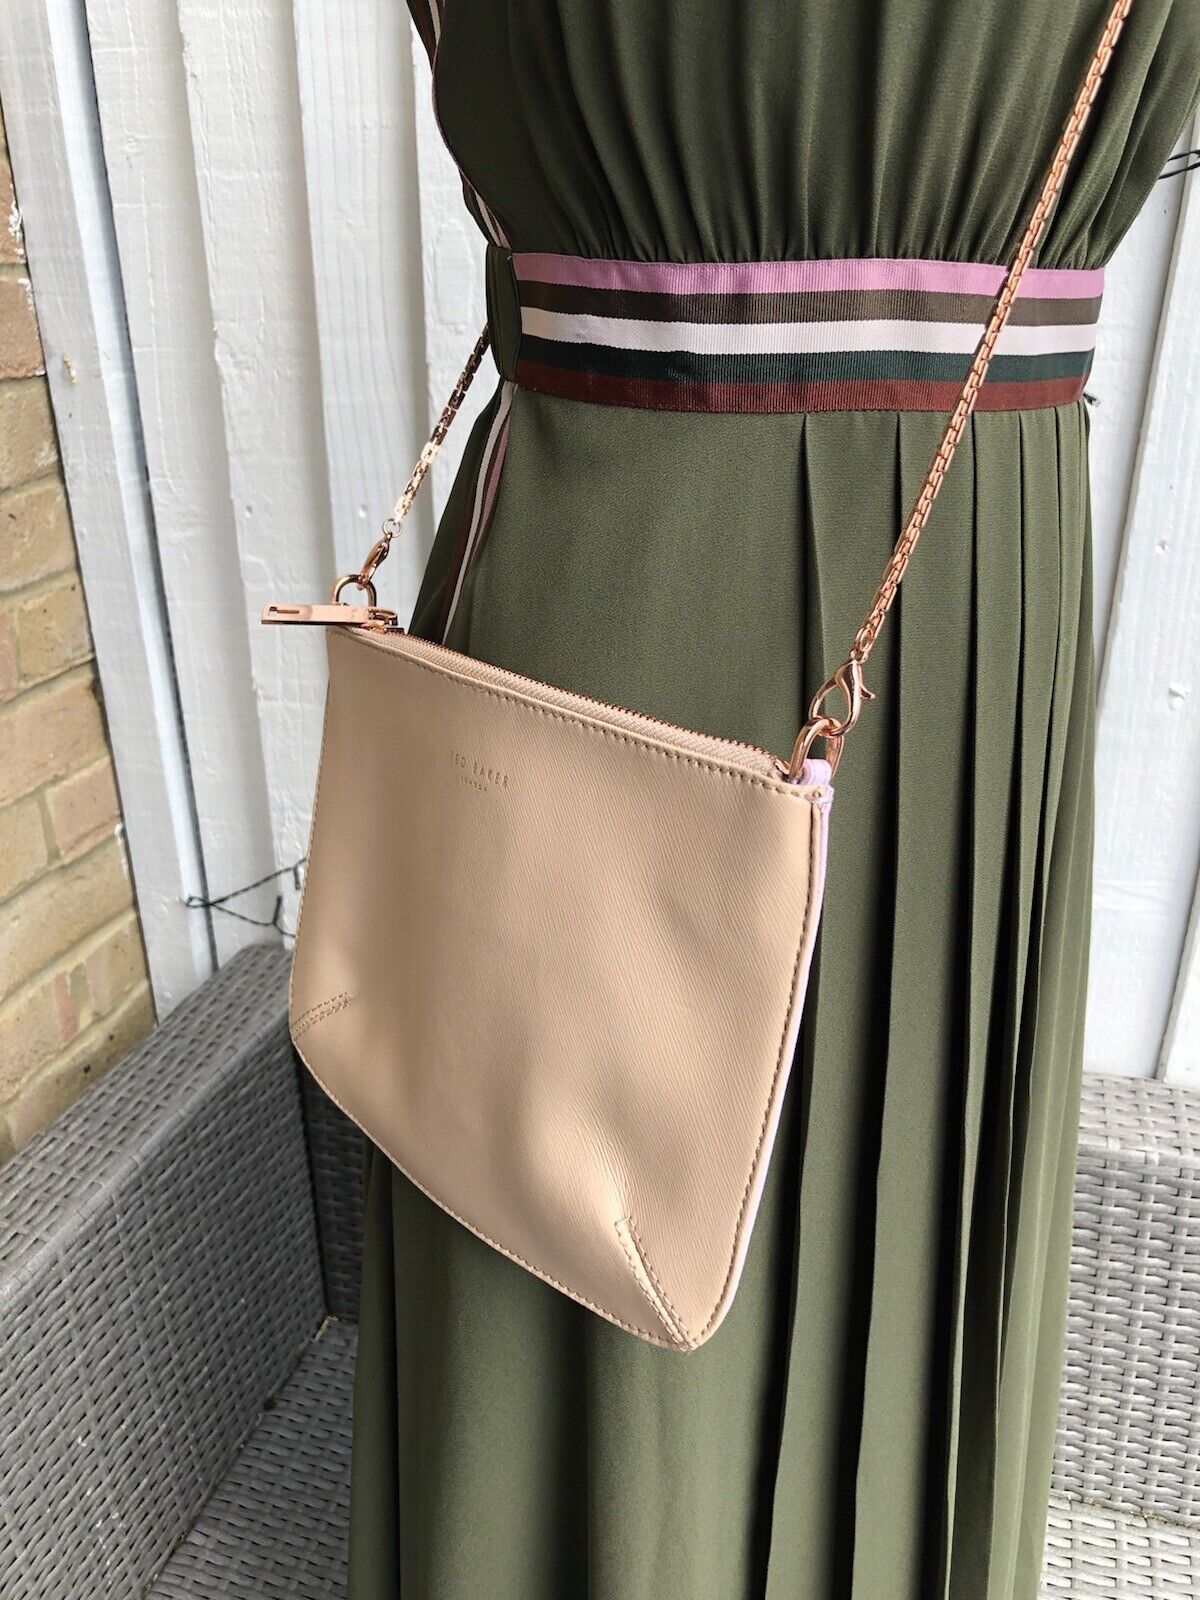 Ted Baker BECKY Crosshatch leather crossbody beige/pink chain bag VGC